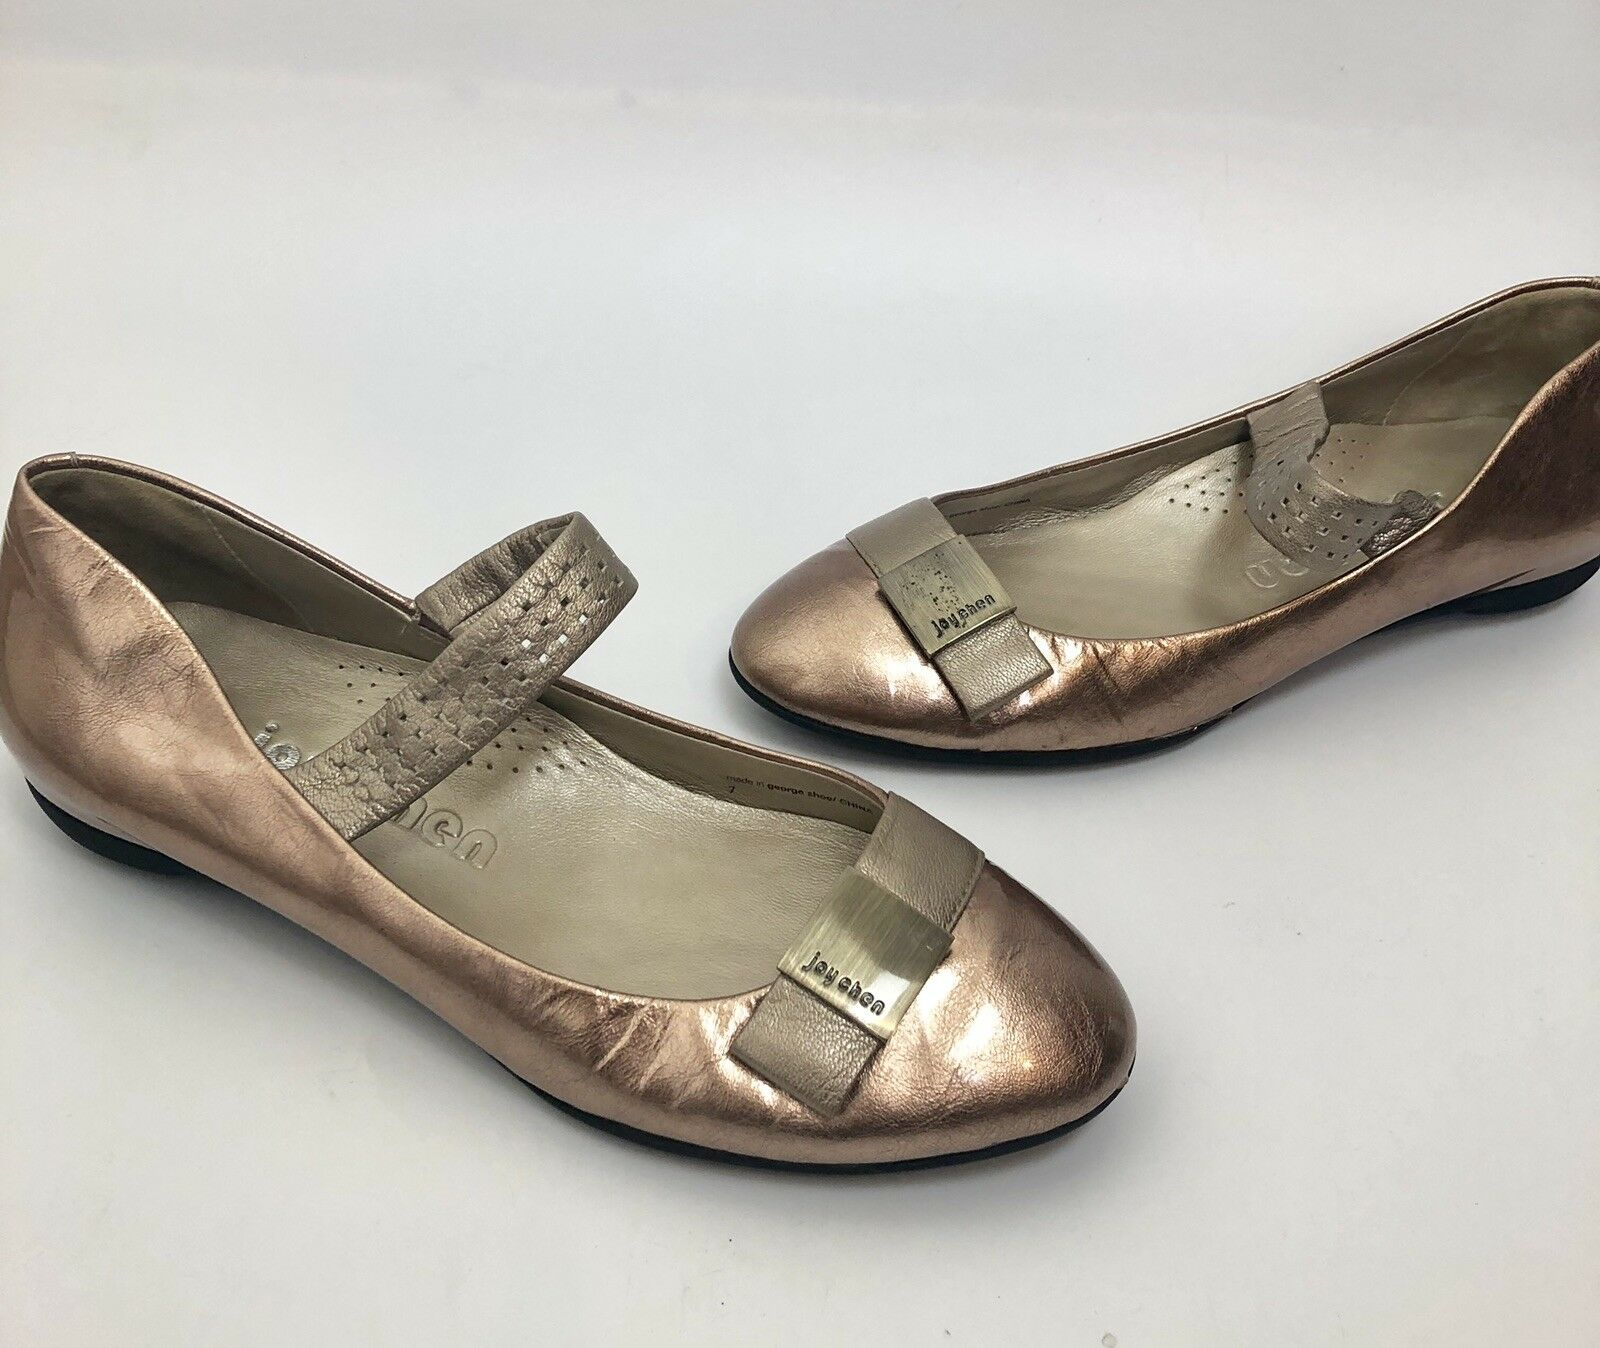 Joy chen pink gold mary janes flats size 7